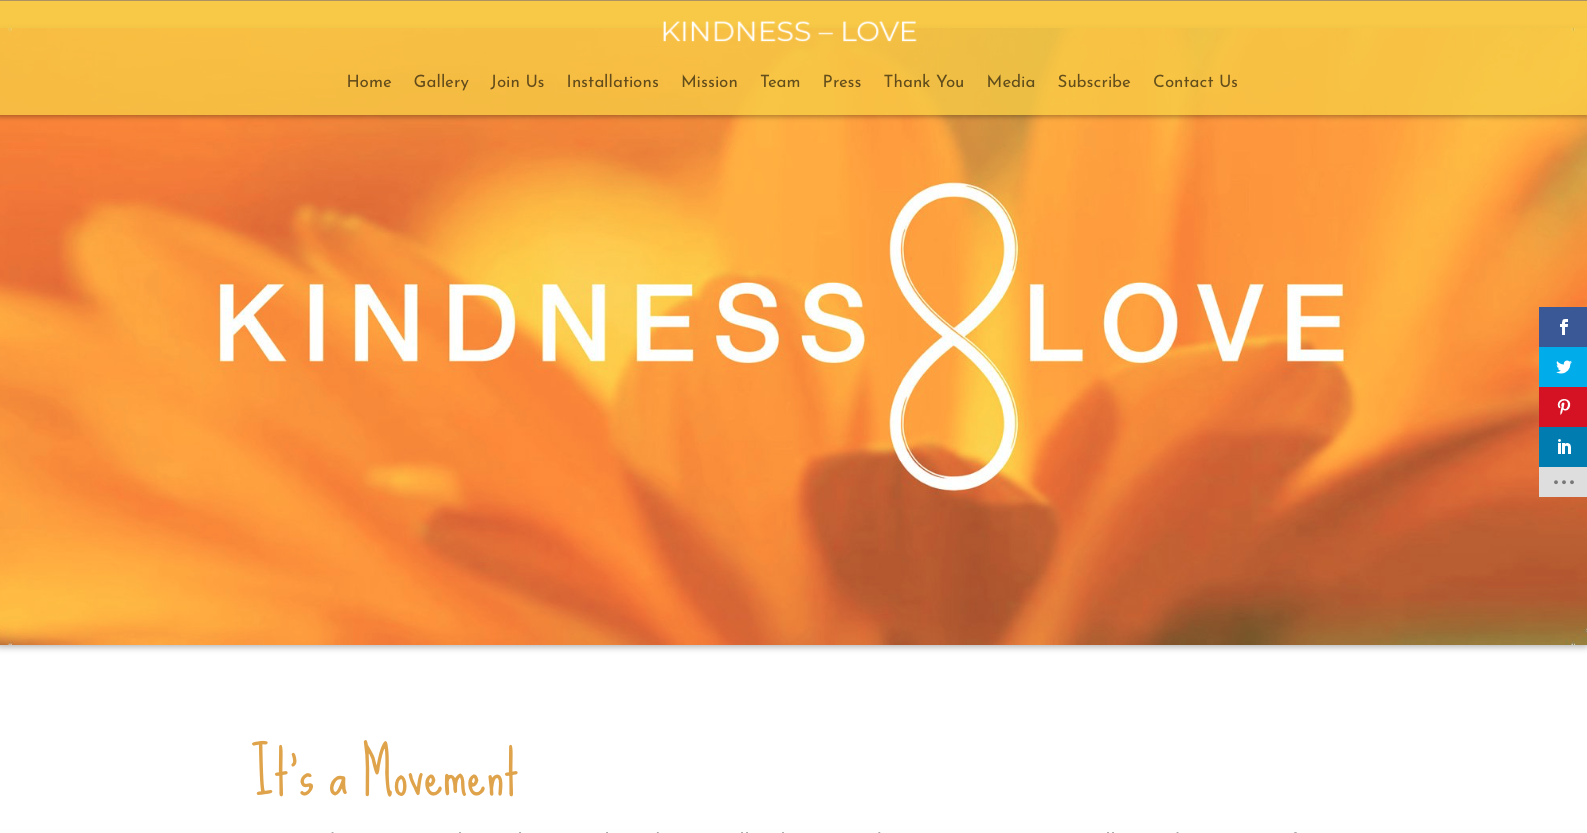 Kindness+Love Website 2020 by Amalam Media